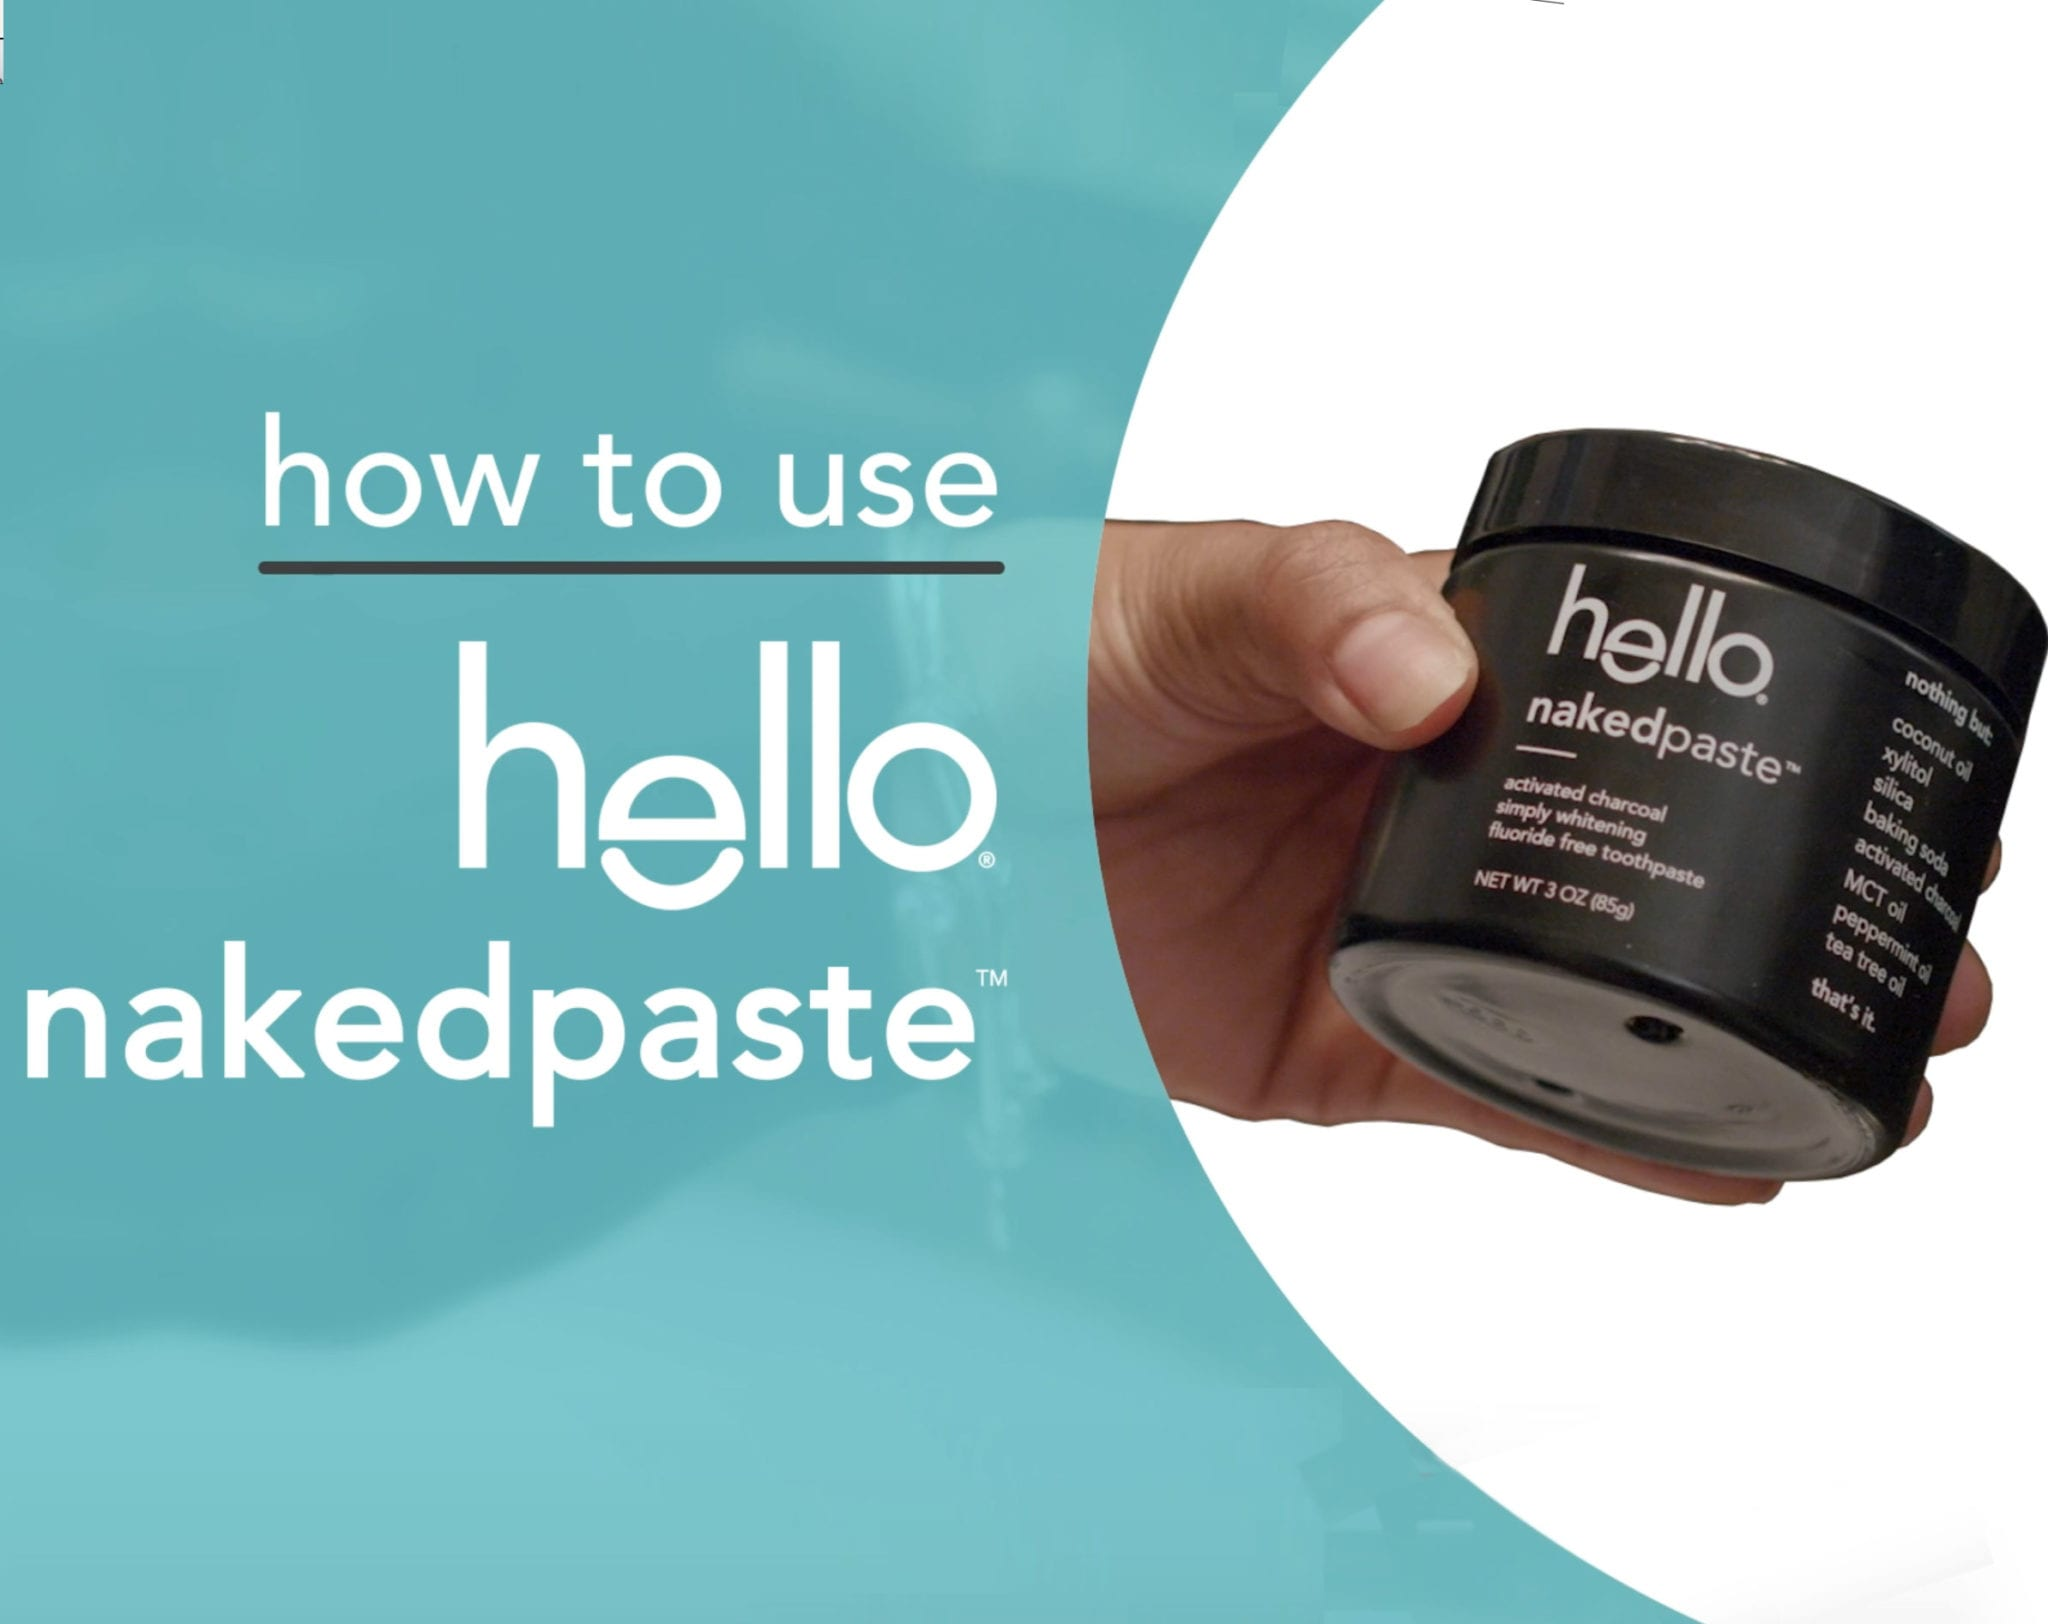 how to use naked paste